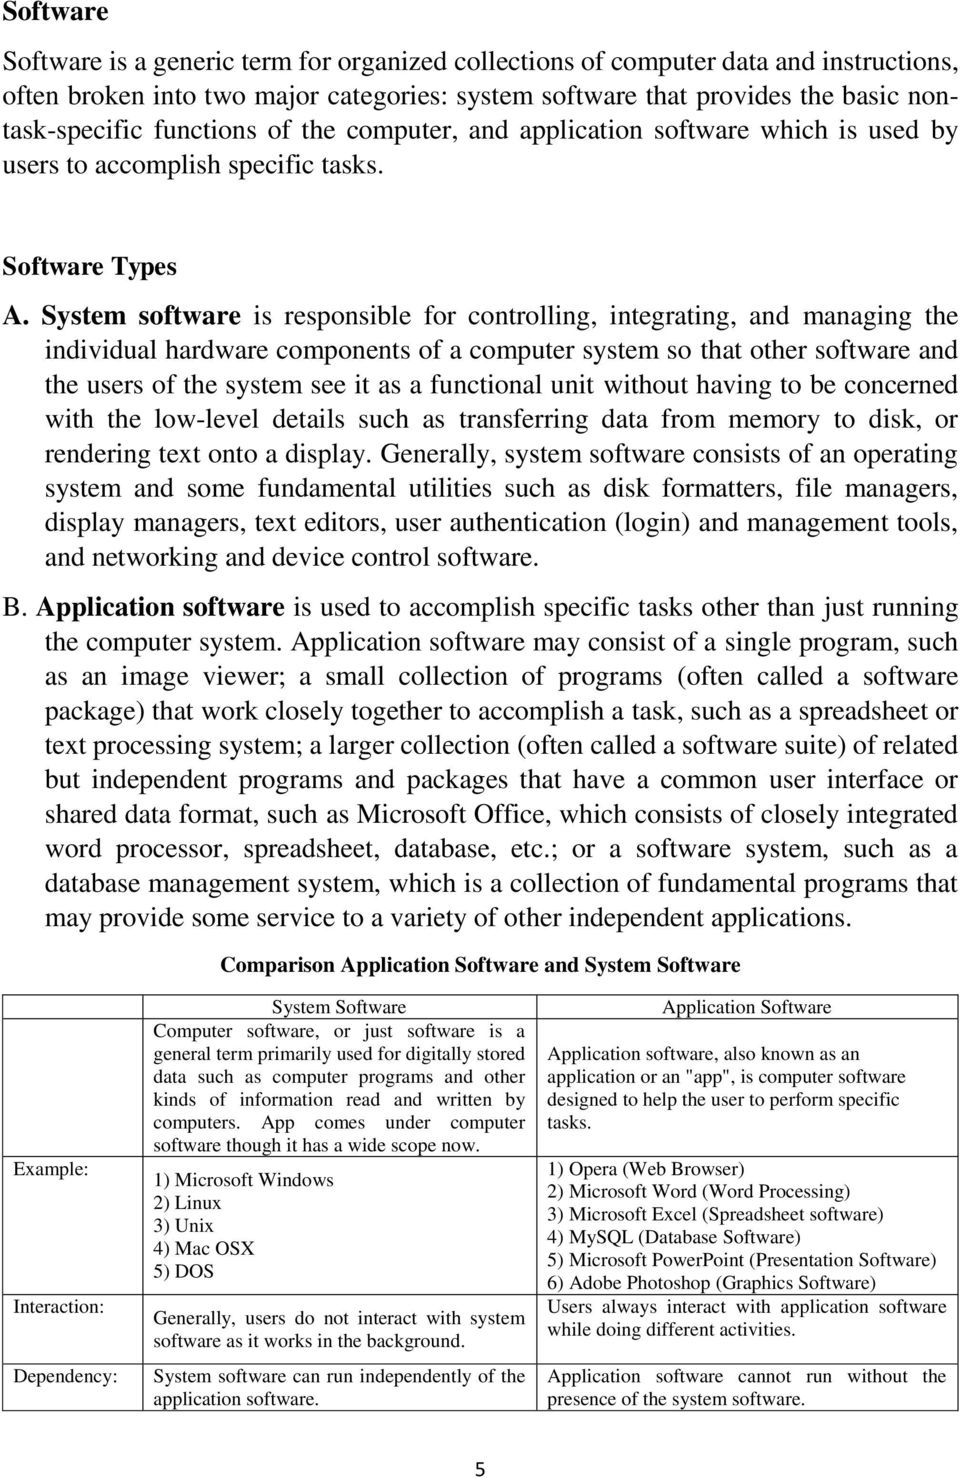 System software is responsible for controlling, integrating, and managing the individual hardware components of a computer system so that other software and the users of the system see it as a